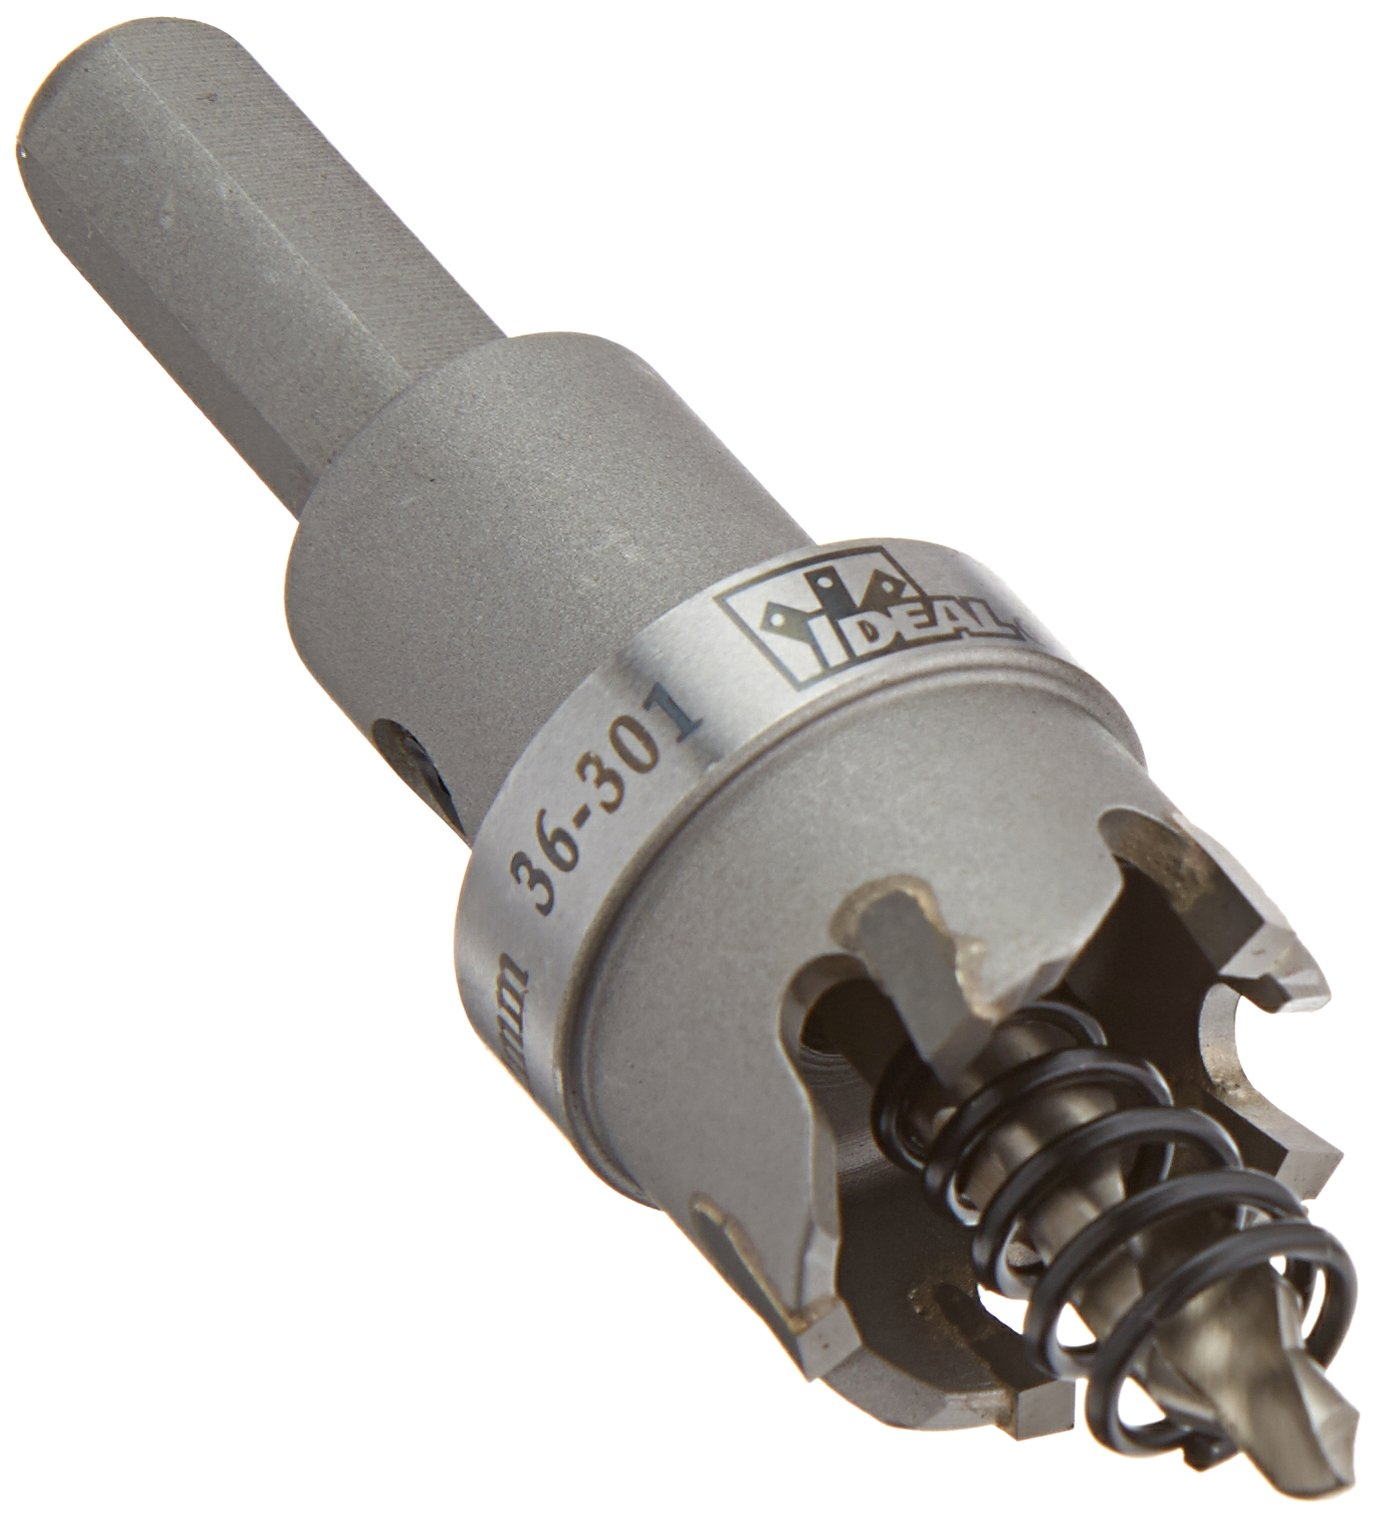 IDEAL 36-301 TKO 7/8-Inch Carbide Tipped Hole Cutter by Ideal